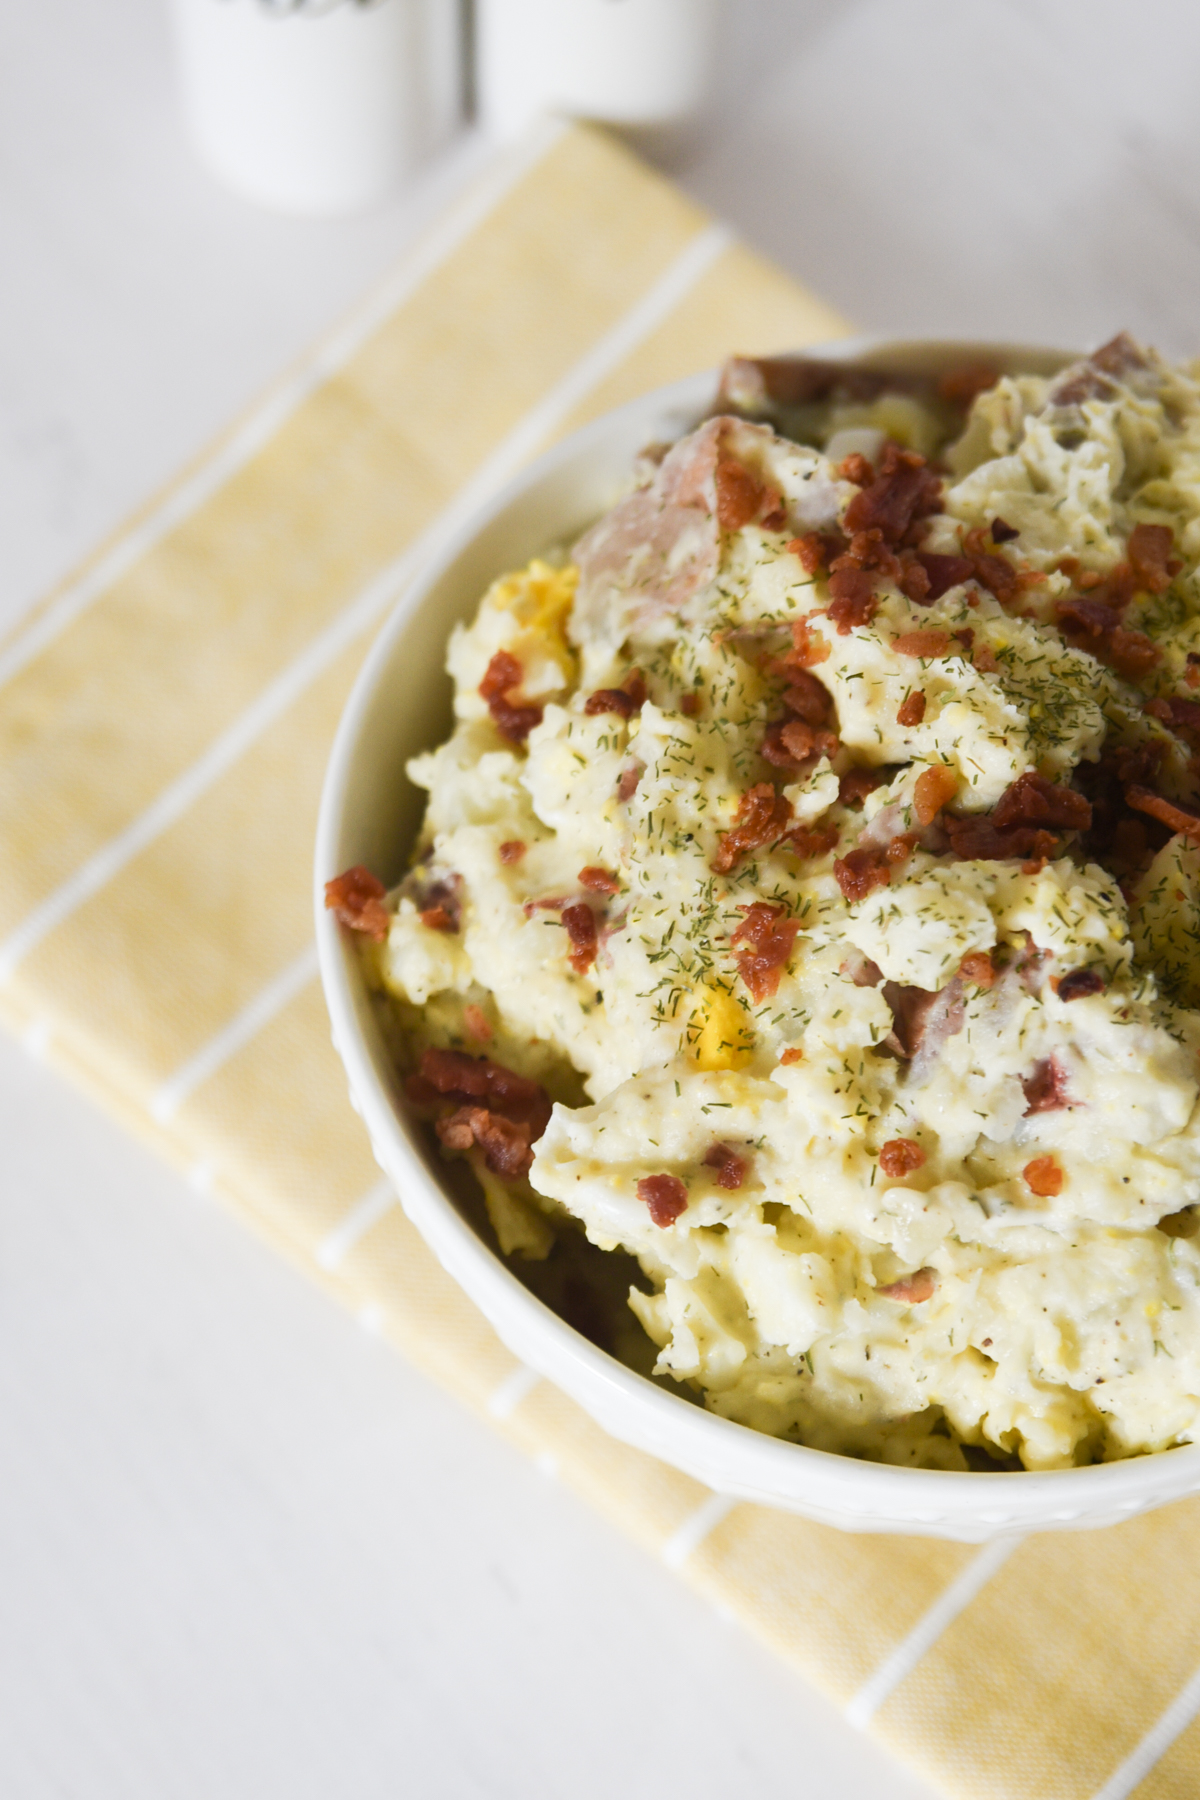 Top view of red potato salad with bacon bits.